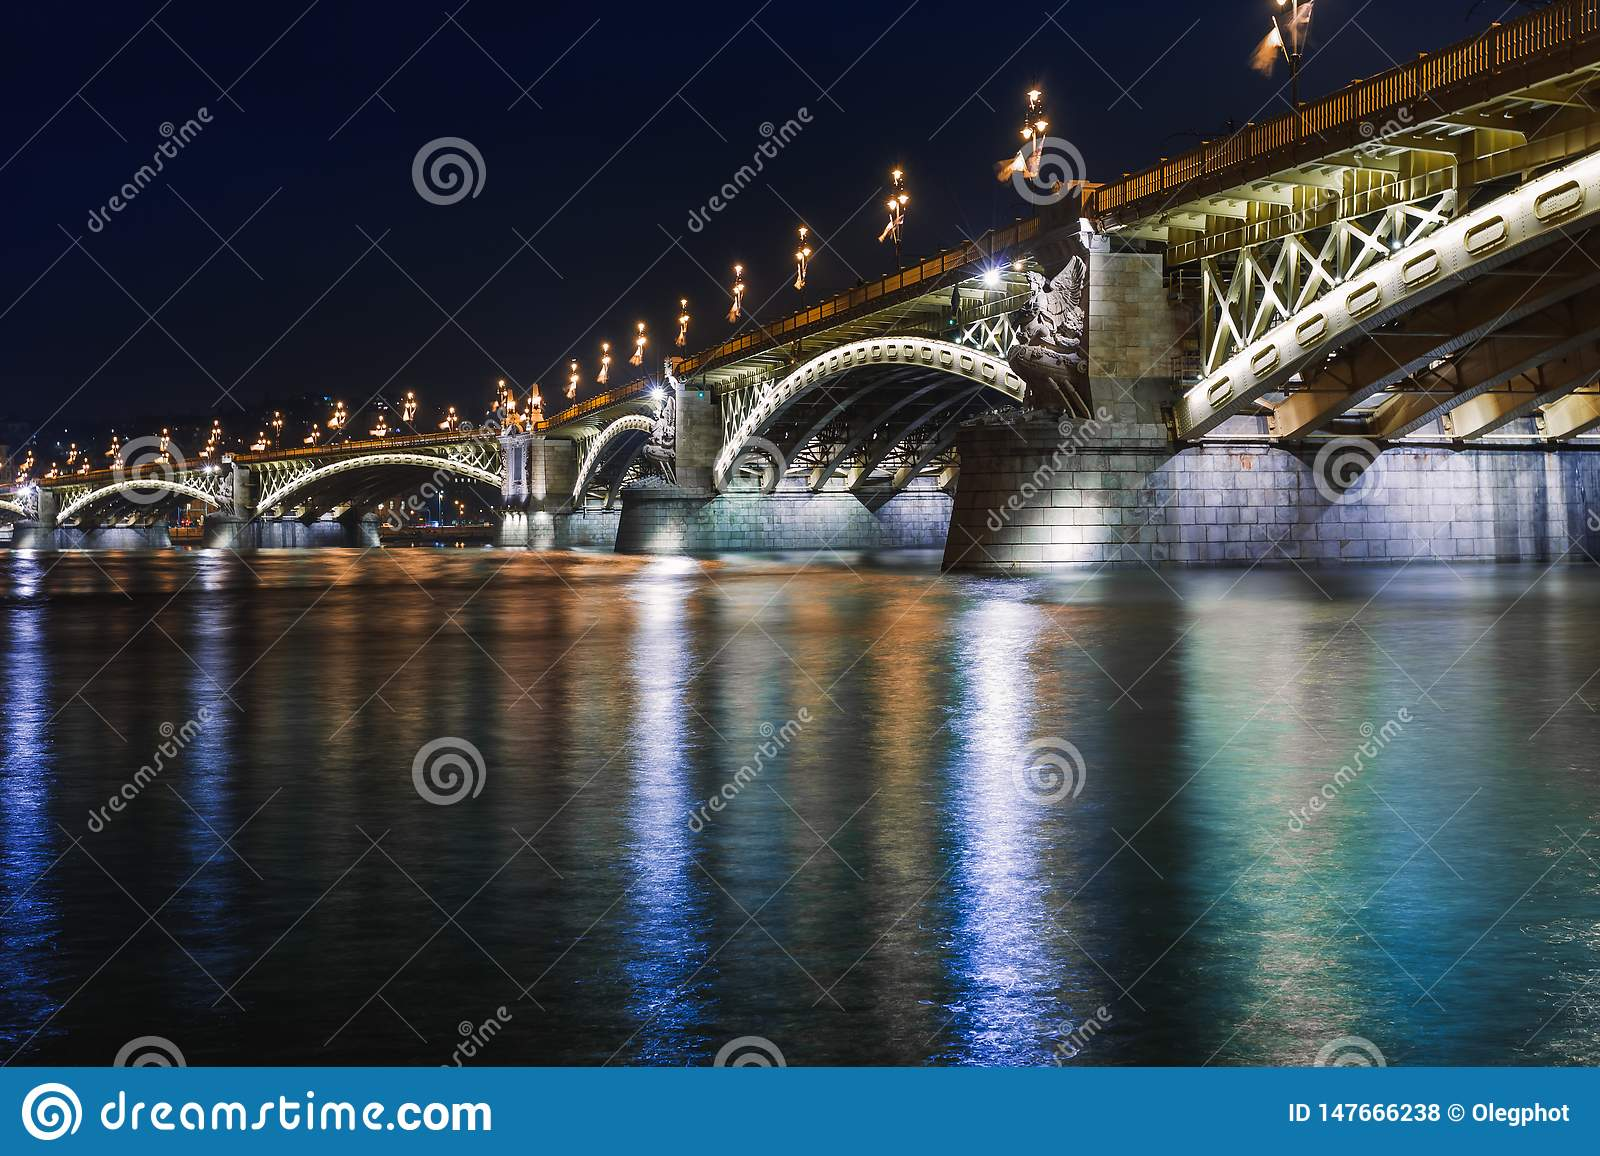 Night view of Budapest. Panorama cityscape of famous tourist destination with Danube and bridges. Travel illuminated landscape in